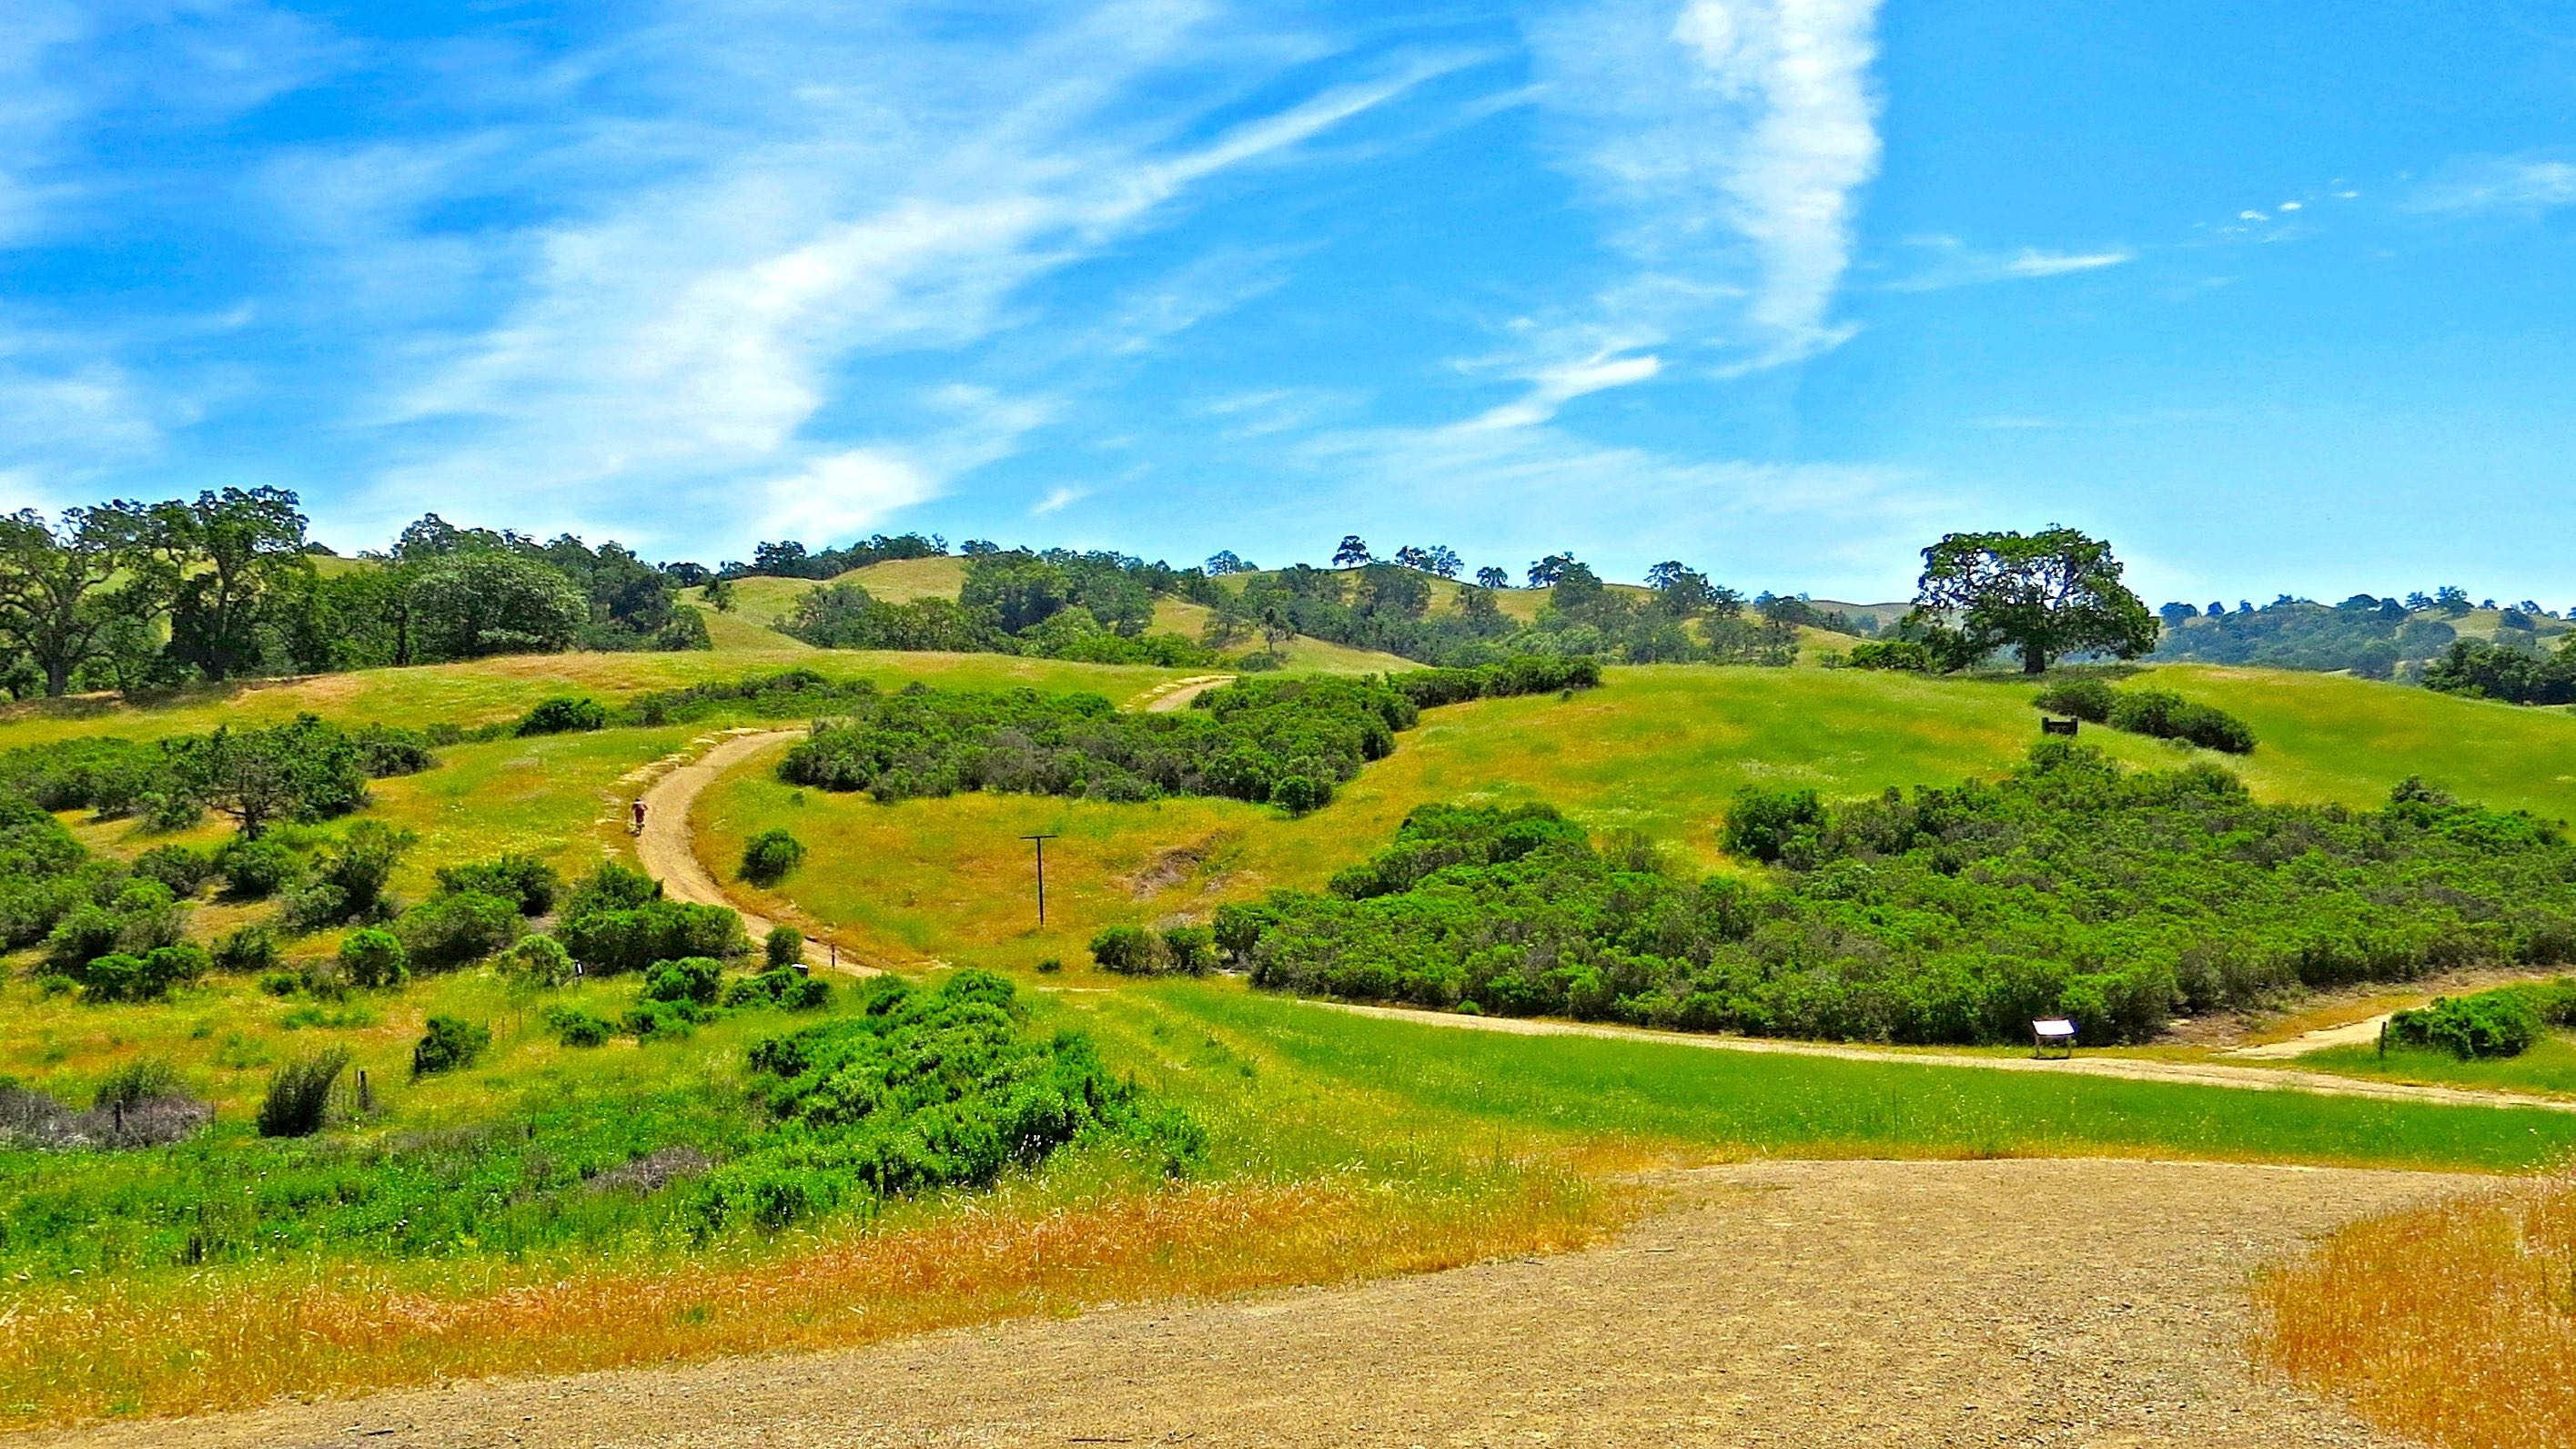 Yesterday's M=4.1 earthquake east of San Jose struck along the Calaveras Fault within Joseph D. Grant Country Park. Historically, the Calaveras Fault has ruptured in large magnitude earthquakes, including a M=6.2 in 1984. (Photo from: Accessible Nature)